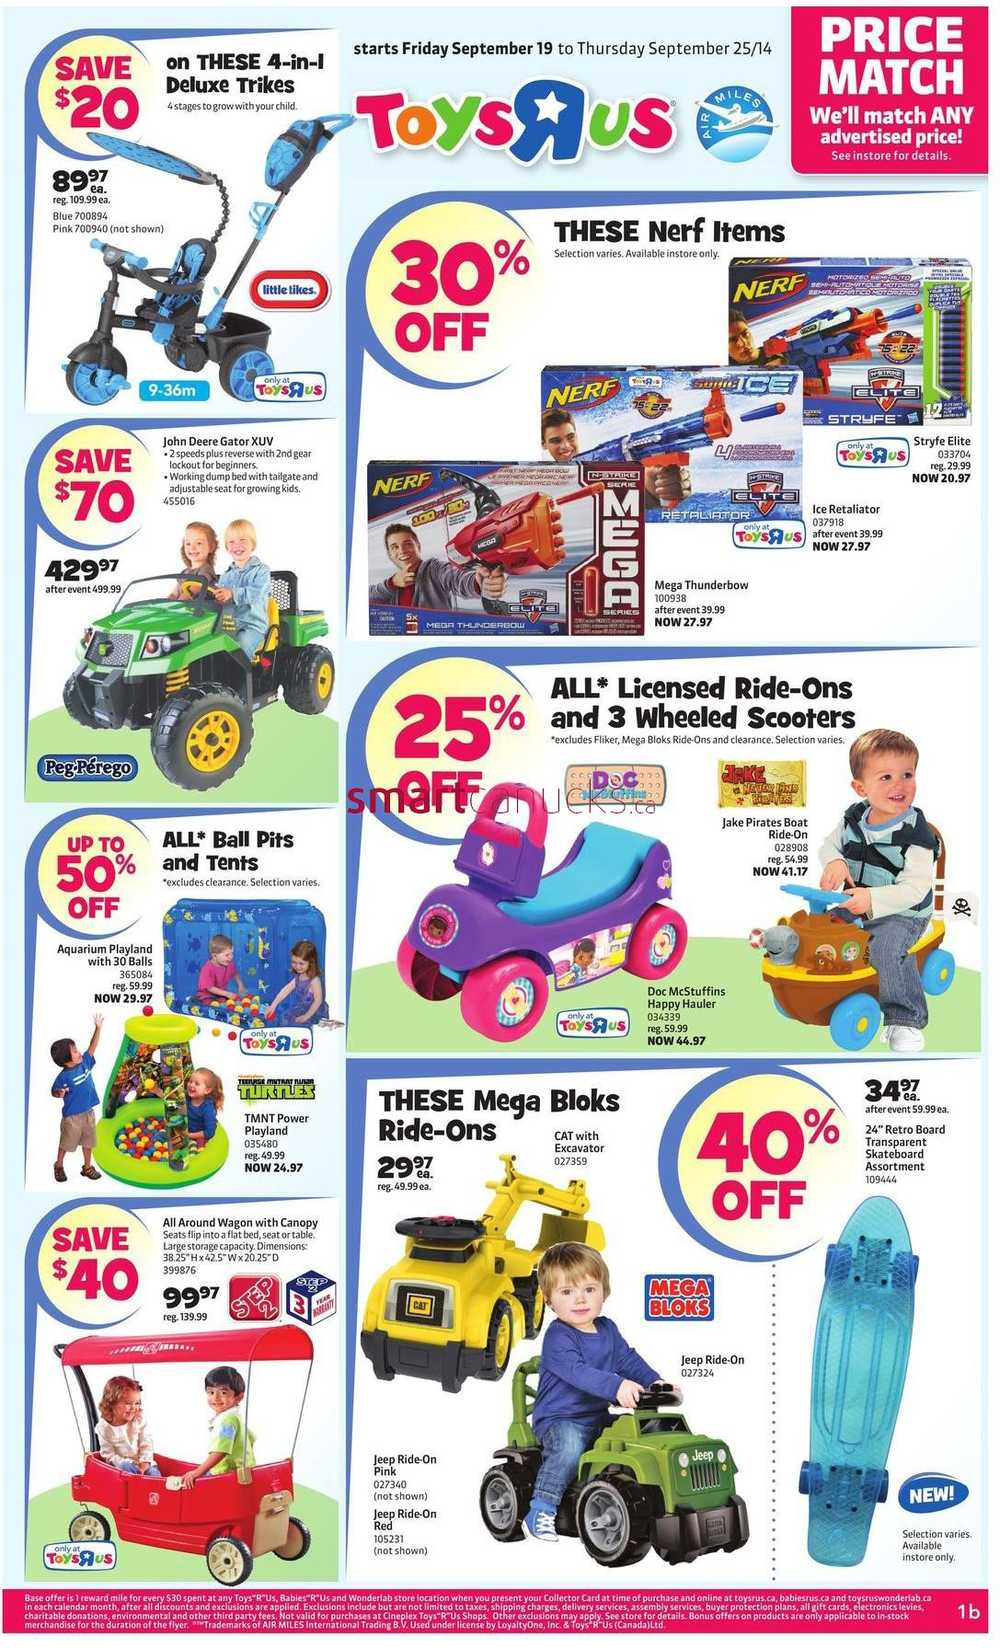 All Toys Toys R Us : Toys r us flyer september to